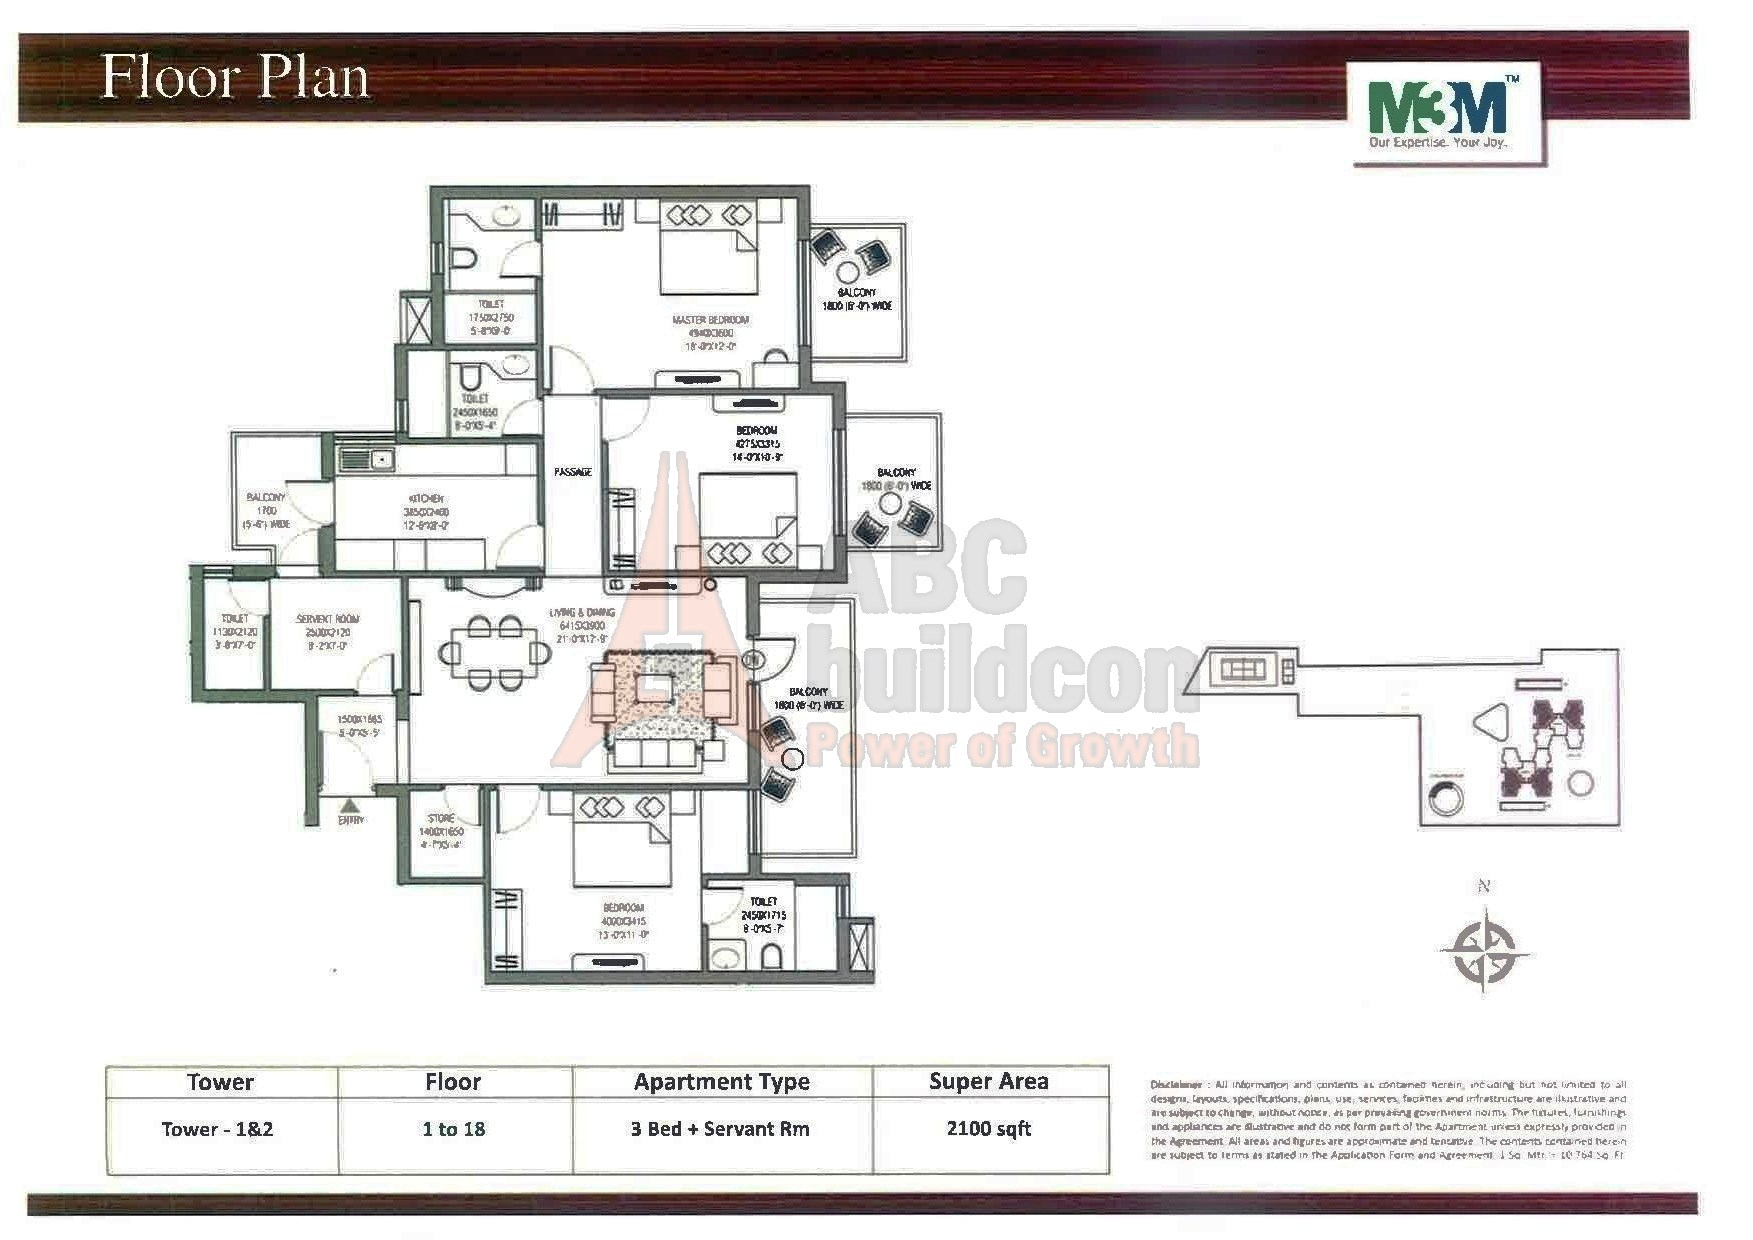 M3m Escala Floor Plan Floorplan In